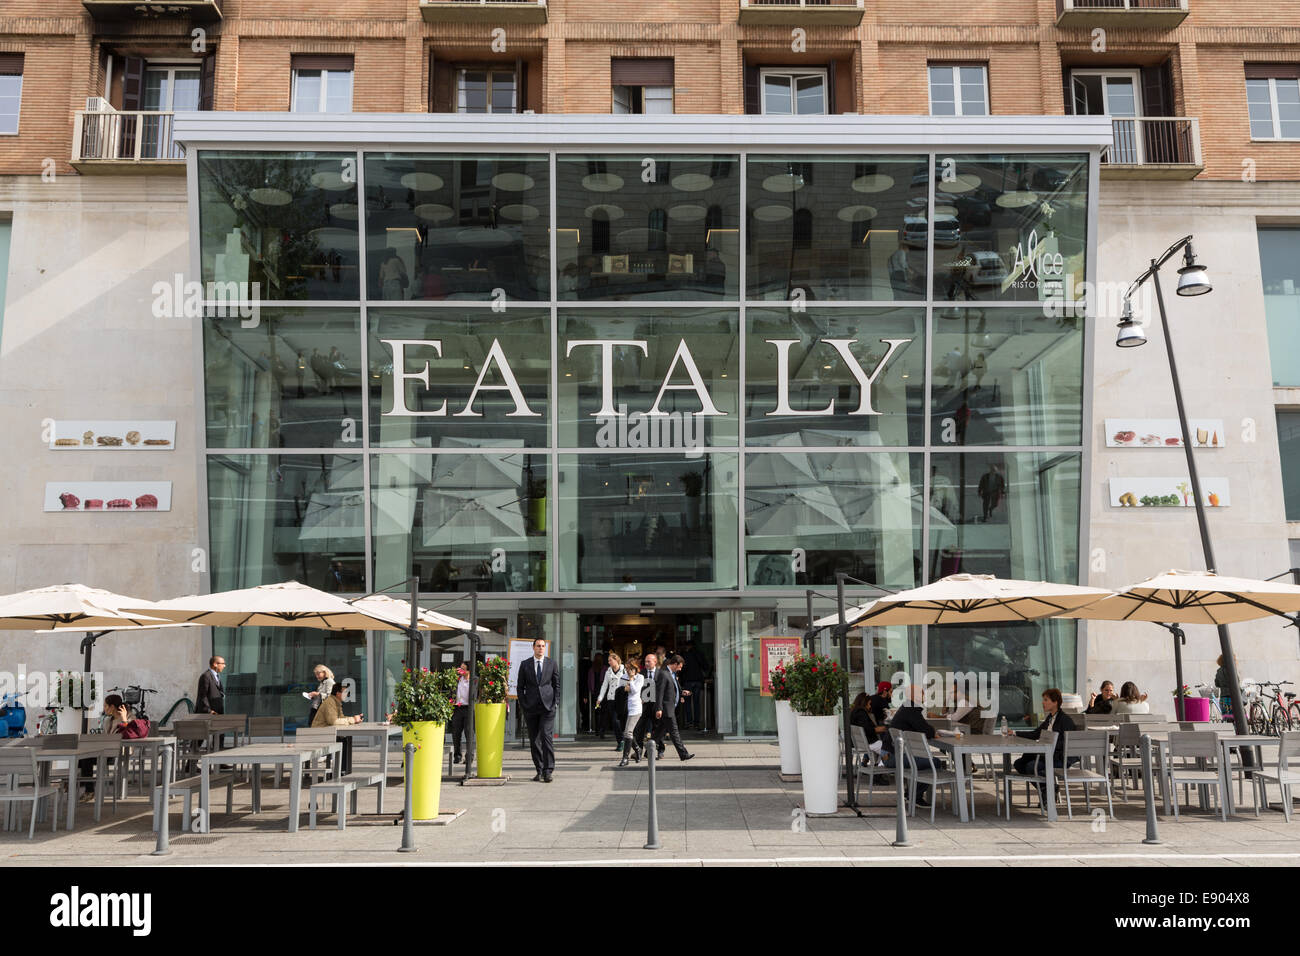 Eataly shop in Milan, Italy - Stock Image